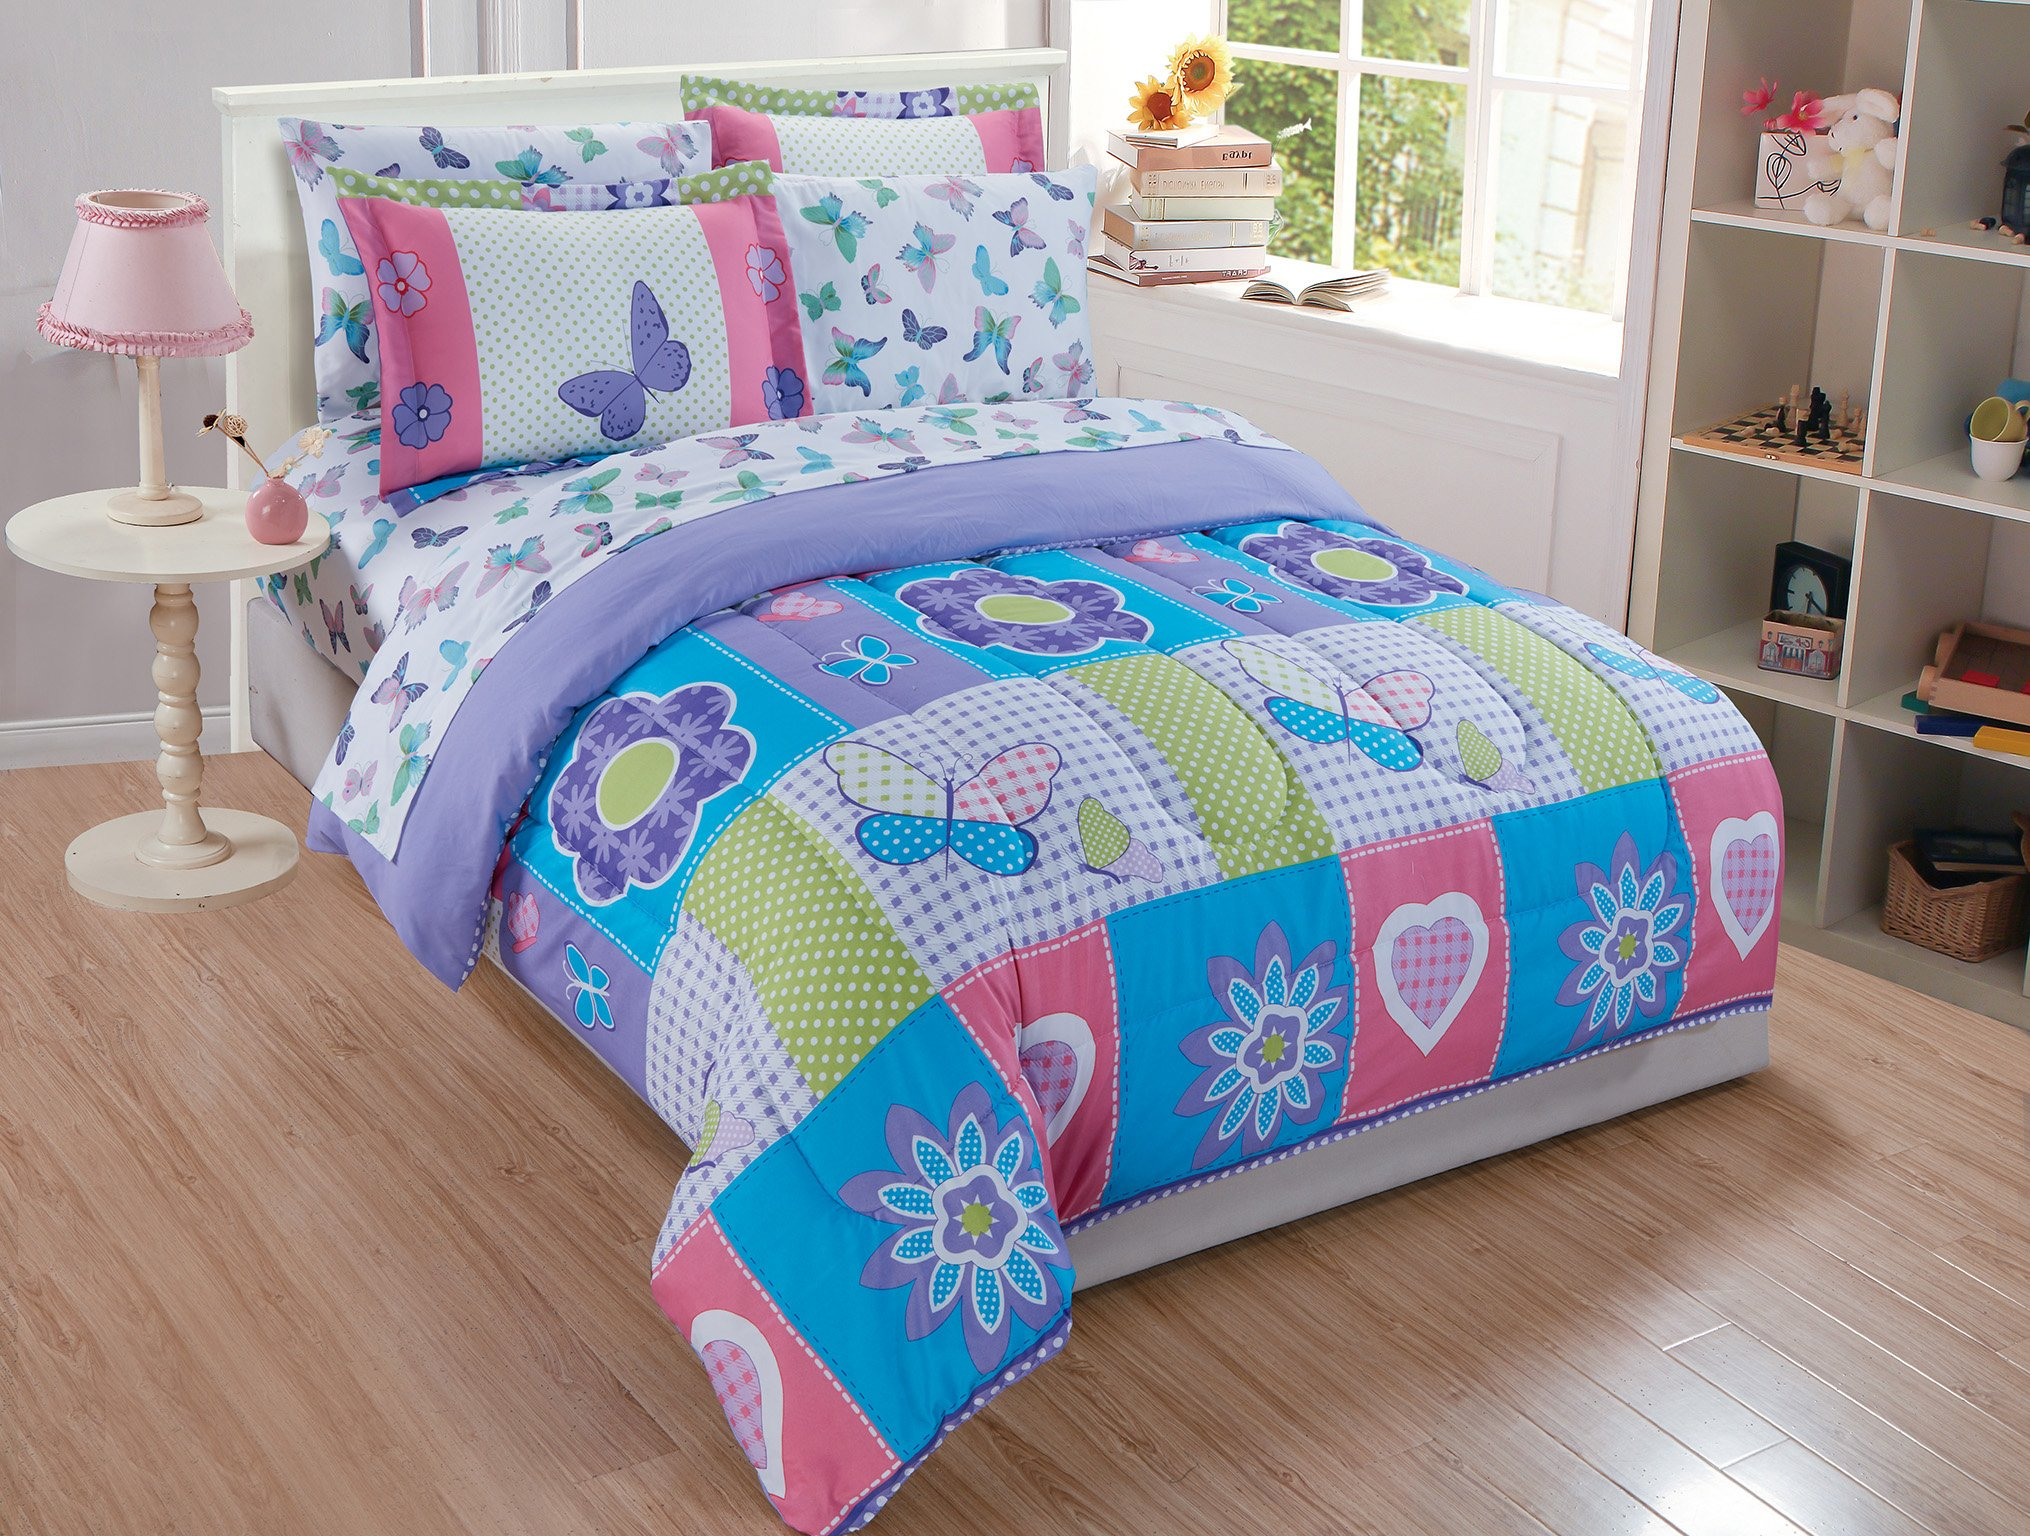 Linen Plus Twin Size 5pc Comforter Set for Girls Butterflies Hearts Flowers Purple Turquoise Pink Green White New